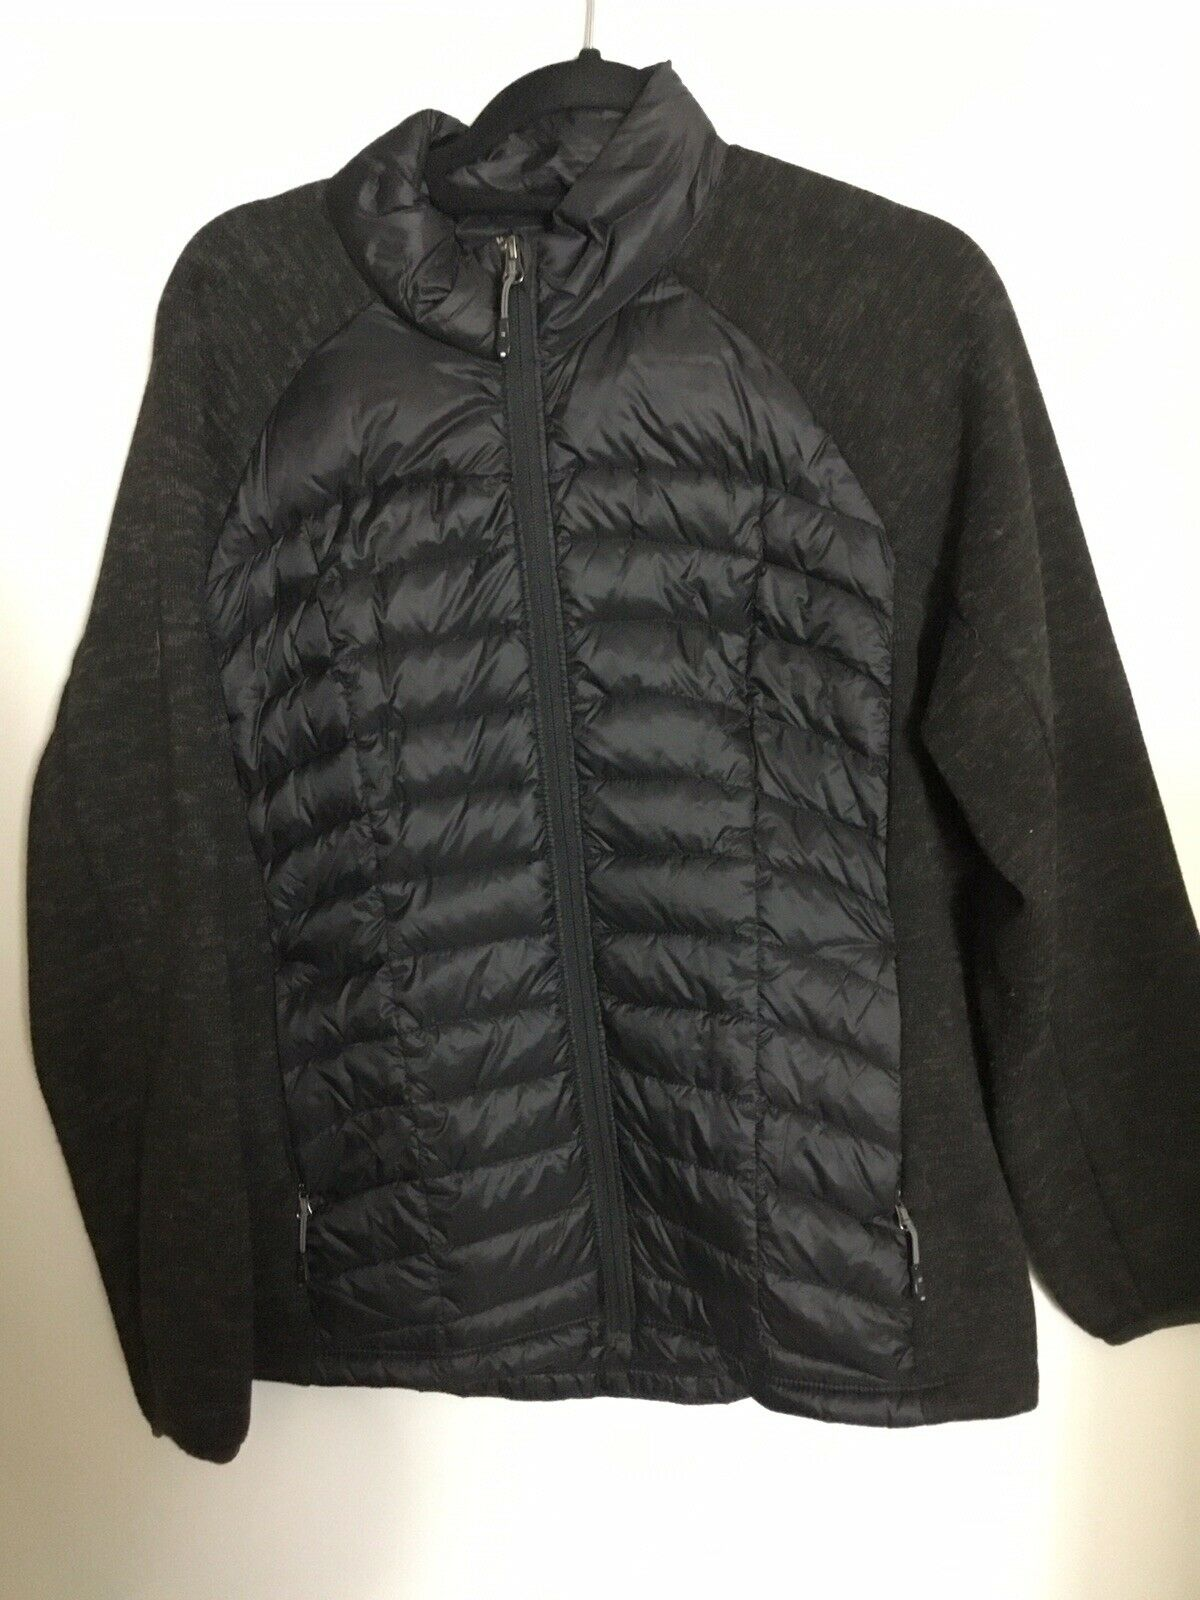 32 Degrees Padded Zip Top In Black. Down/ Feather Filled. VGC. UK XL